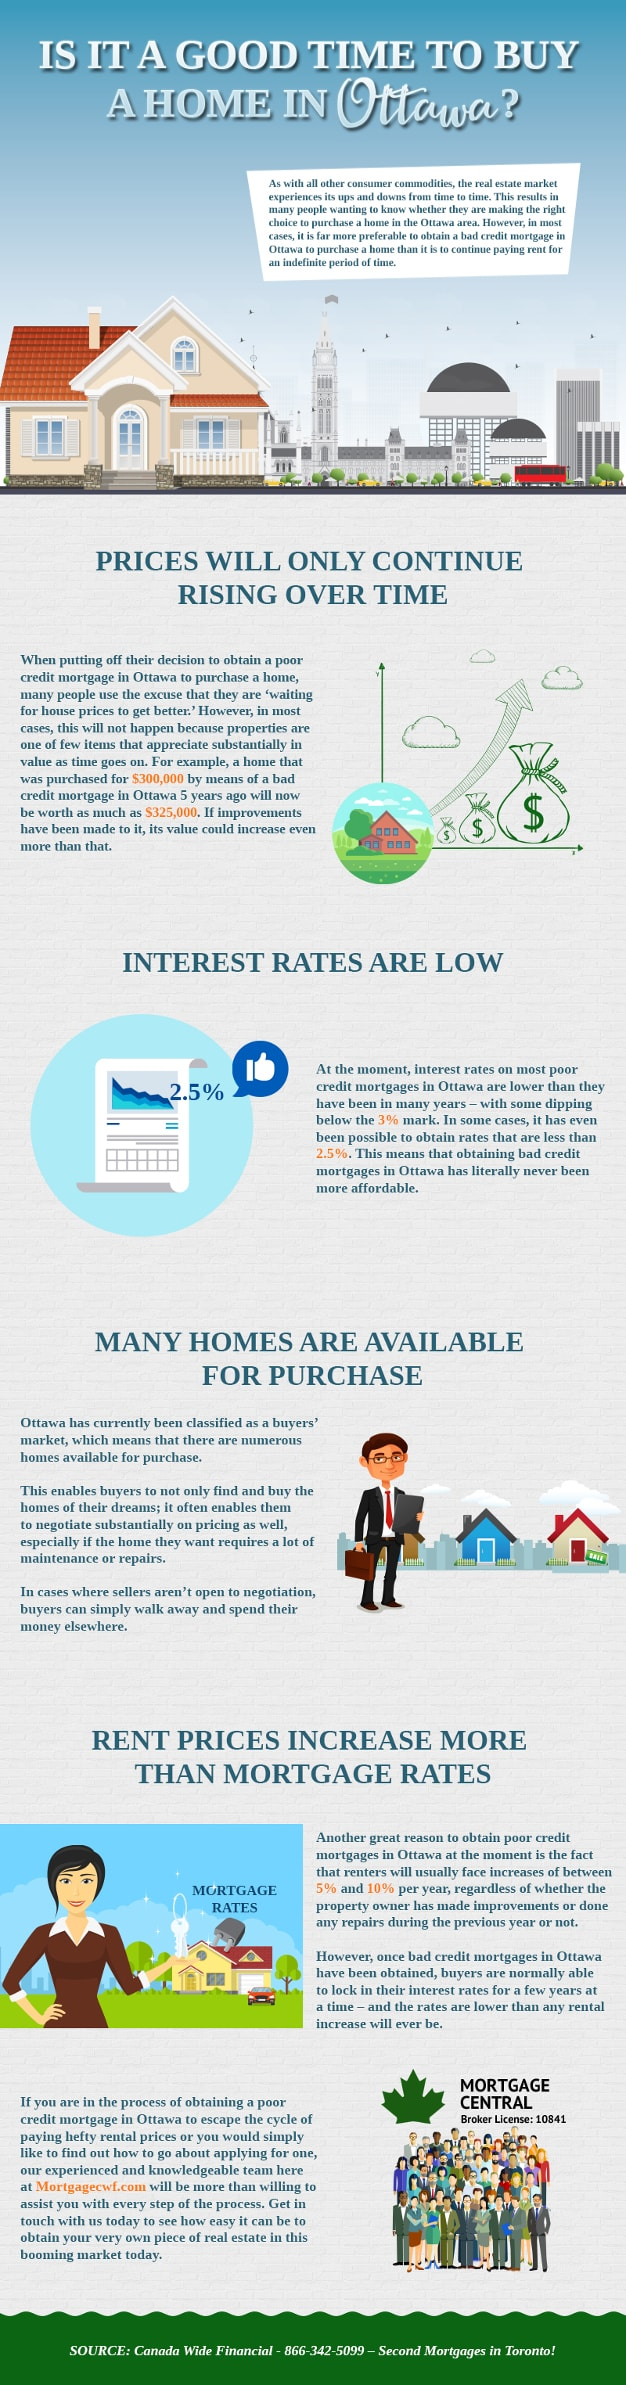 Is it a Good Time to Buy a Home in Ottawa - Infographic